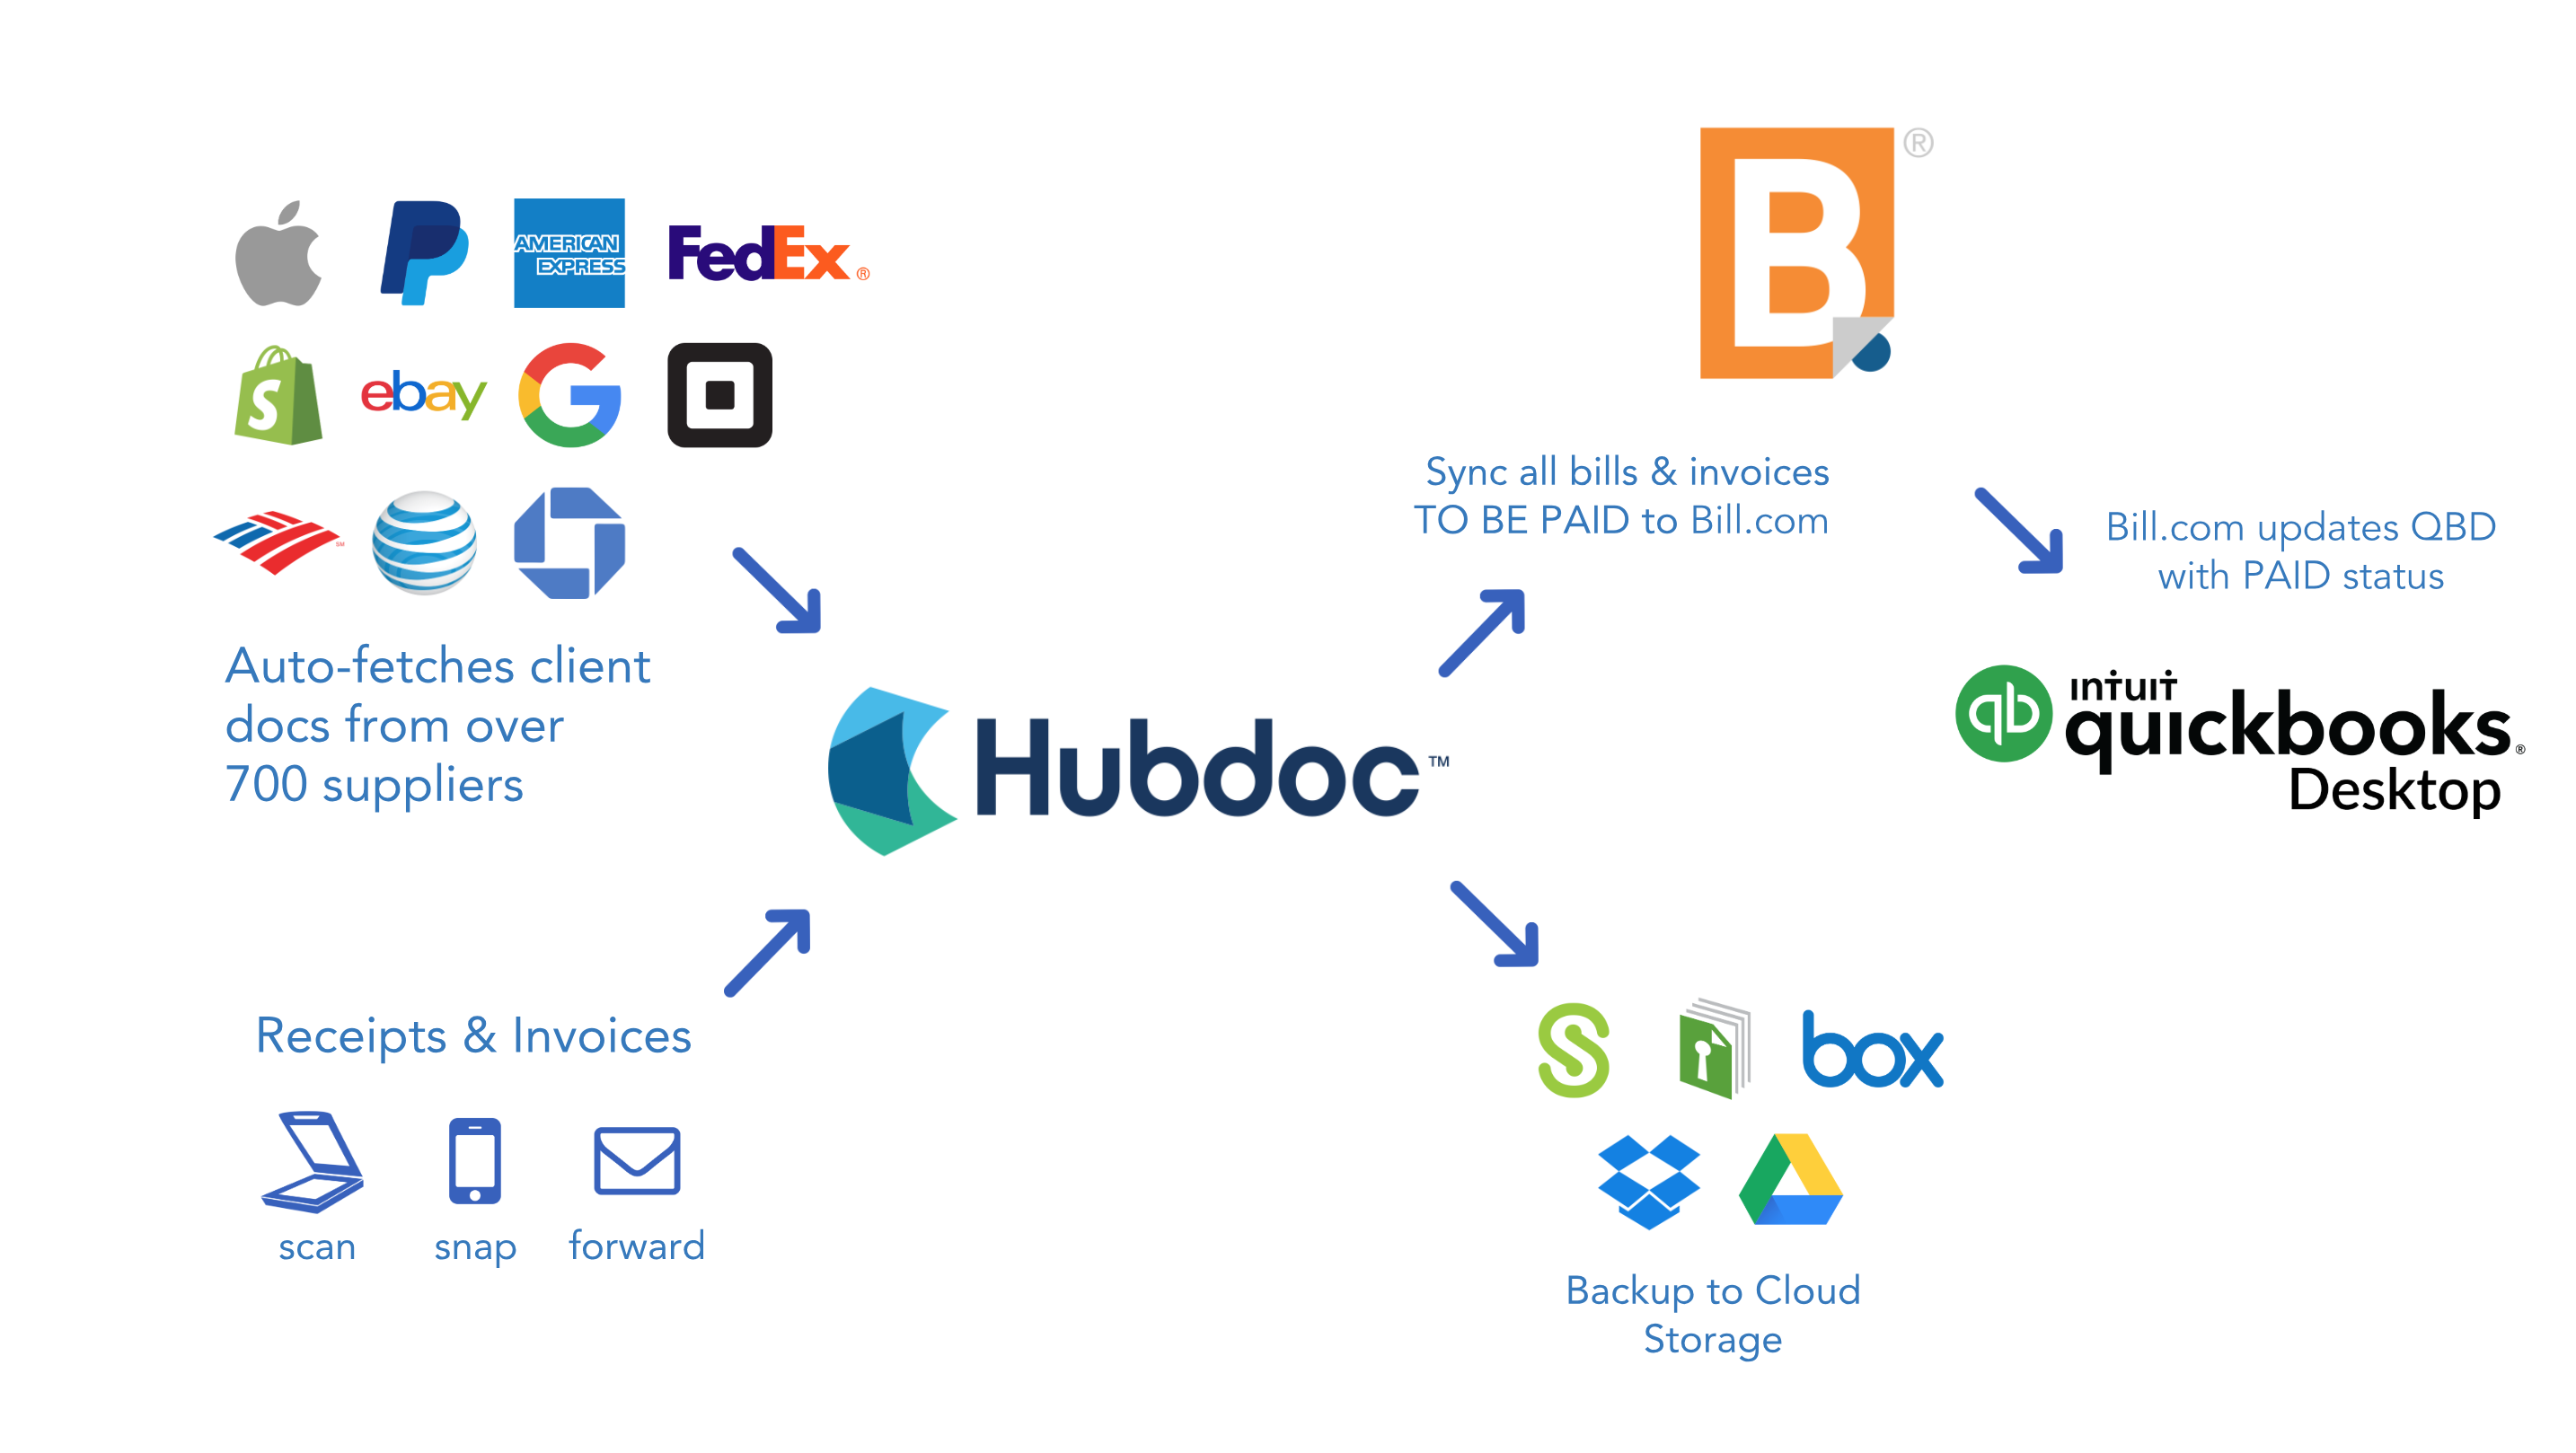 Hubdoc_Billcom_QBD__white_version_.png